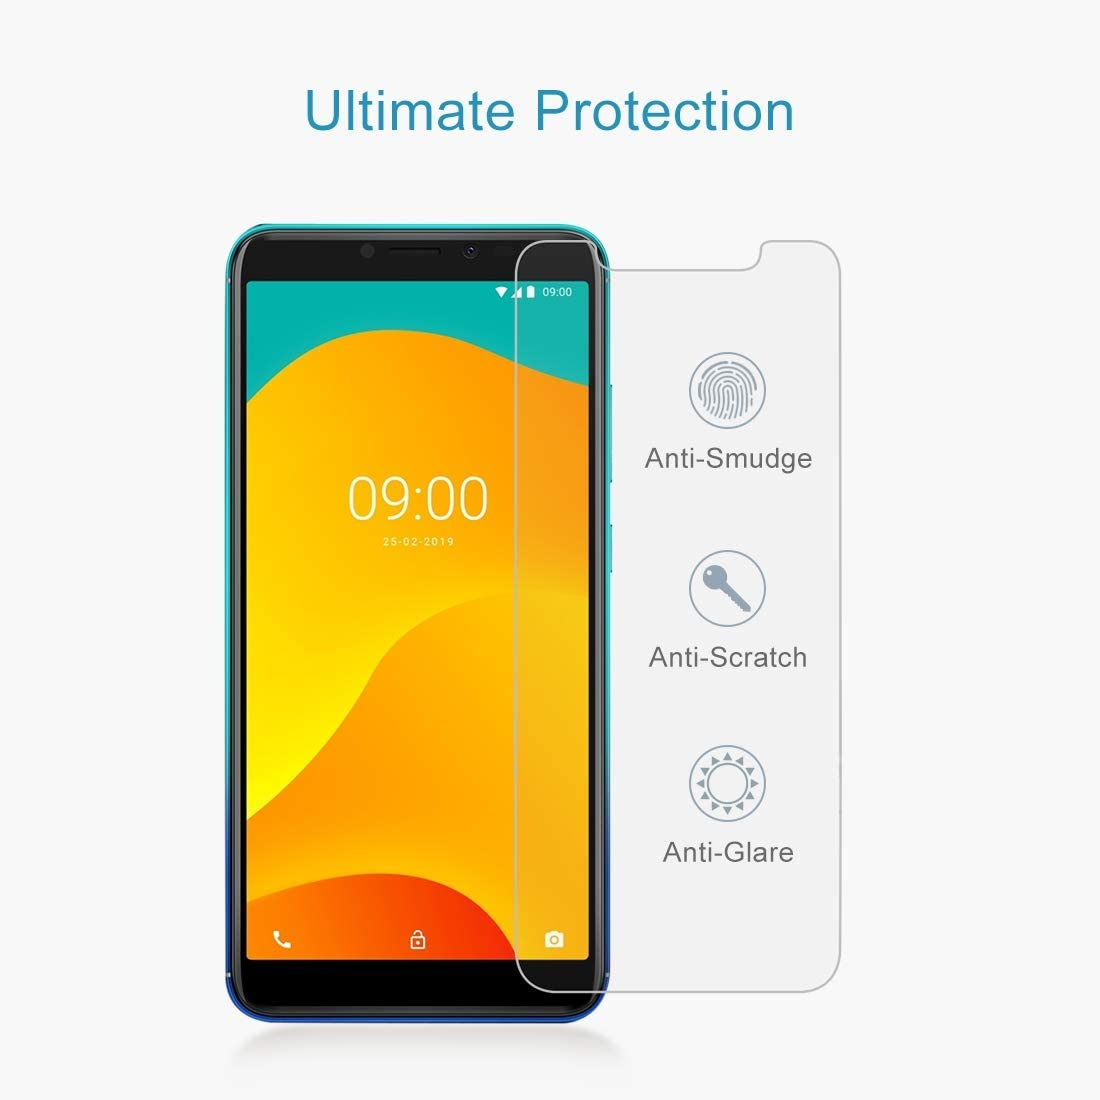 YINZHI Screen Protector Film 100 PCS0.26mm 9H 2.5D Tempered Glass Film for Alcatel Pixi 4 5.5 inch Clear